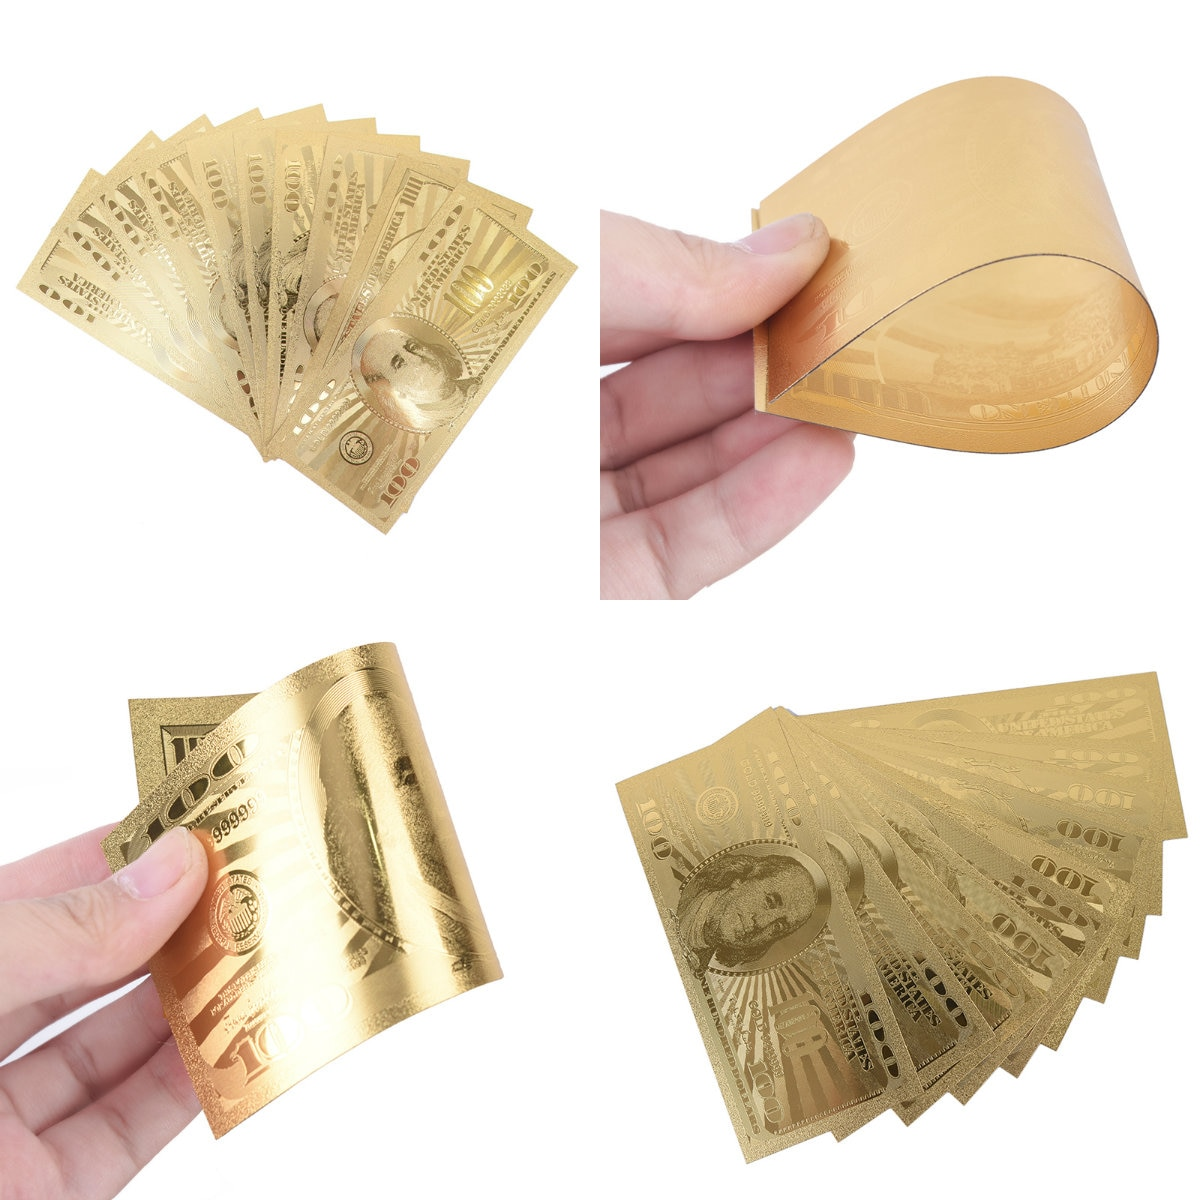 10Pcs/Lot Commemorative Gold Banknotes 100 Dollar USA Currency Bill Fake Paper Money Coin Medal 24k United States OF America